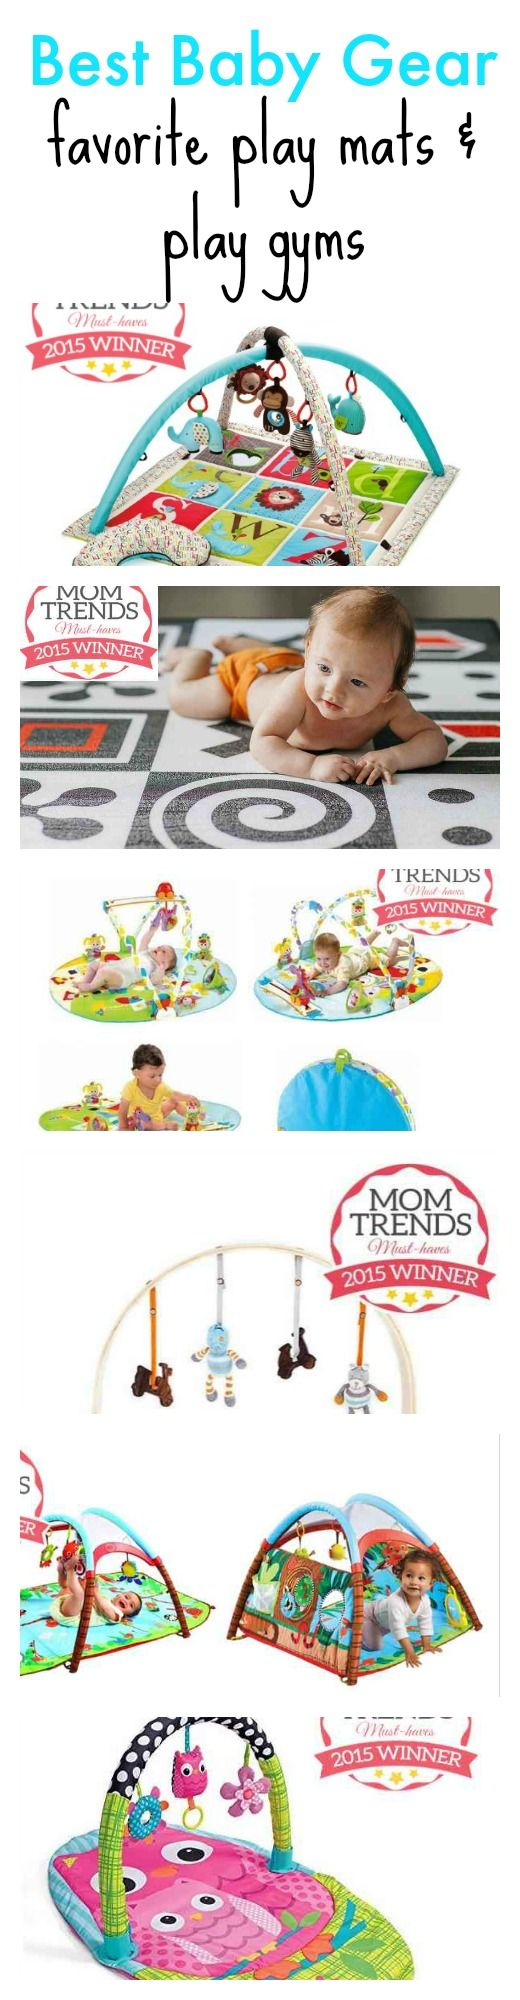 Best Baby Gear: They may be called play mats, play gyms or activity centers, but you will come to know them as the only way you'll get 5 minutes to yourself or your saving grace when you're trying to make dinner. Whether you're looking for a play mat with all the bells and whistles or a modern wooden play gym to match your living room decor, we've rounded up the best play mats and play gyms to keep your baby entertained